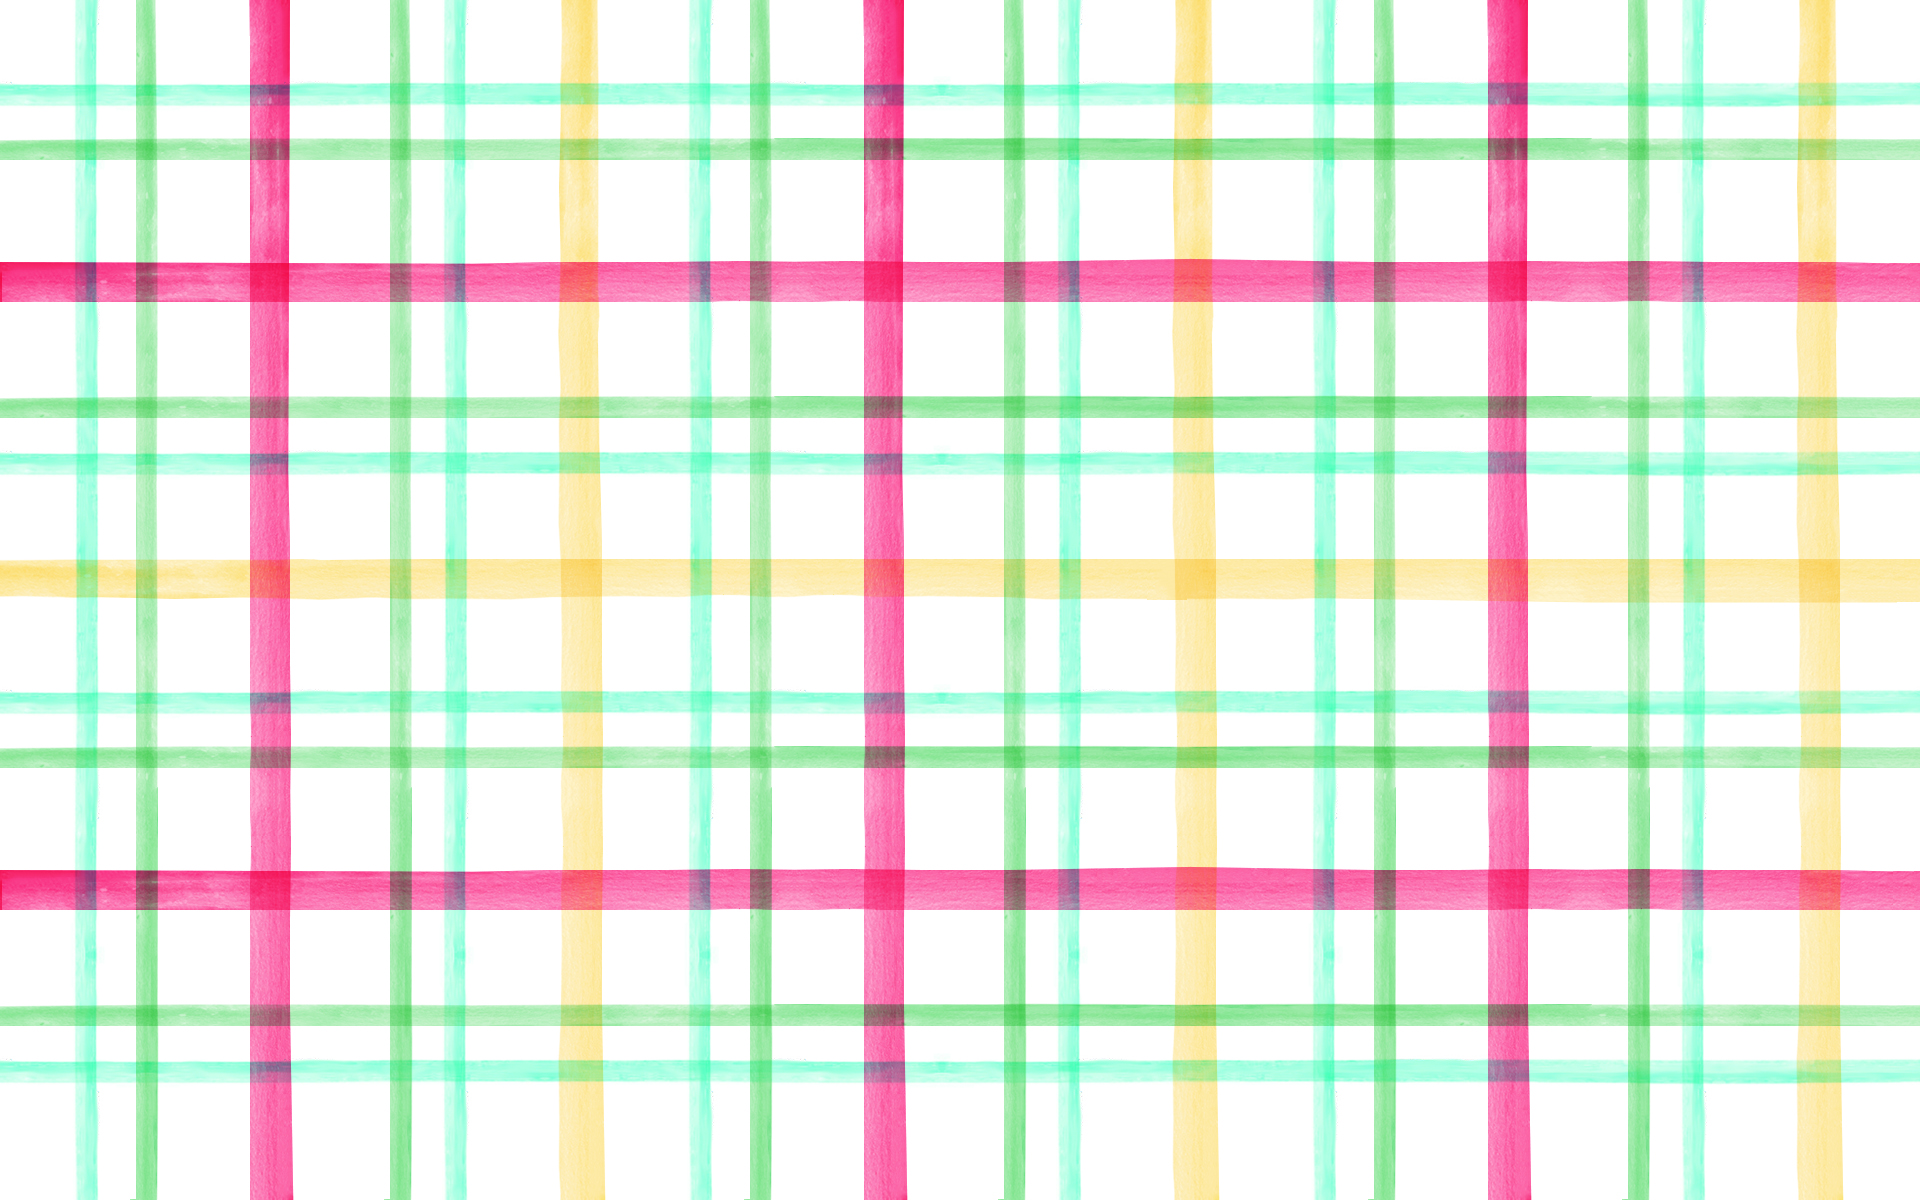 Ipad Wallpaper Kate Spade